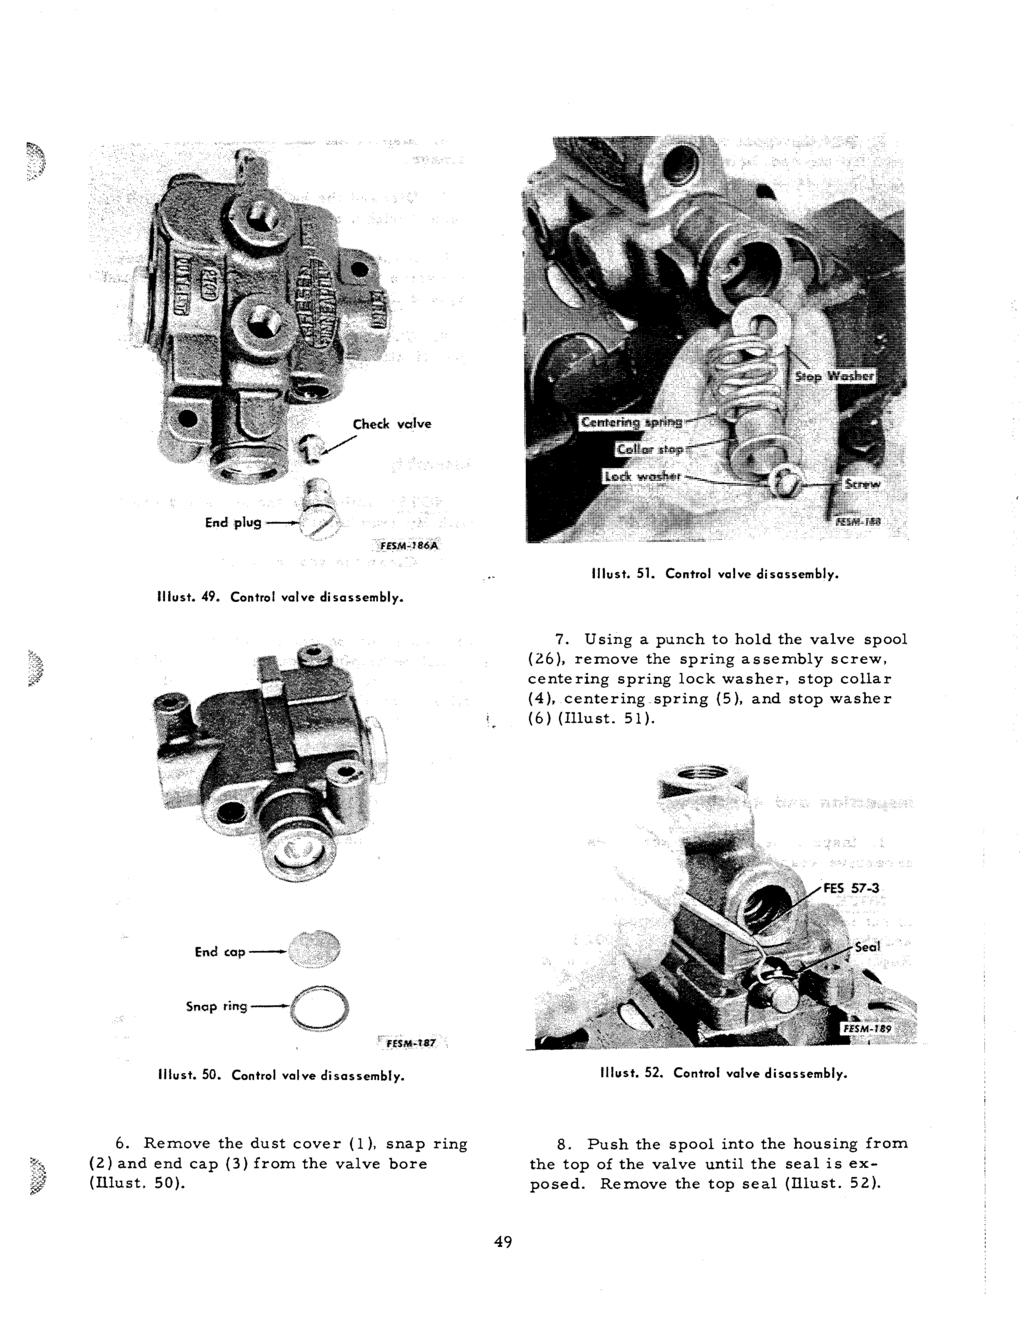 Service Manual 434 B434 Pdf Control System For An On 424 International Tractor Hydraulics Diagram Valve Di Sassembly Liiust 51 Disassembly